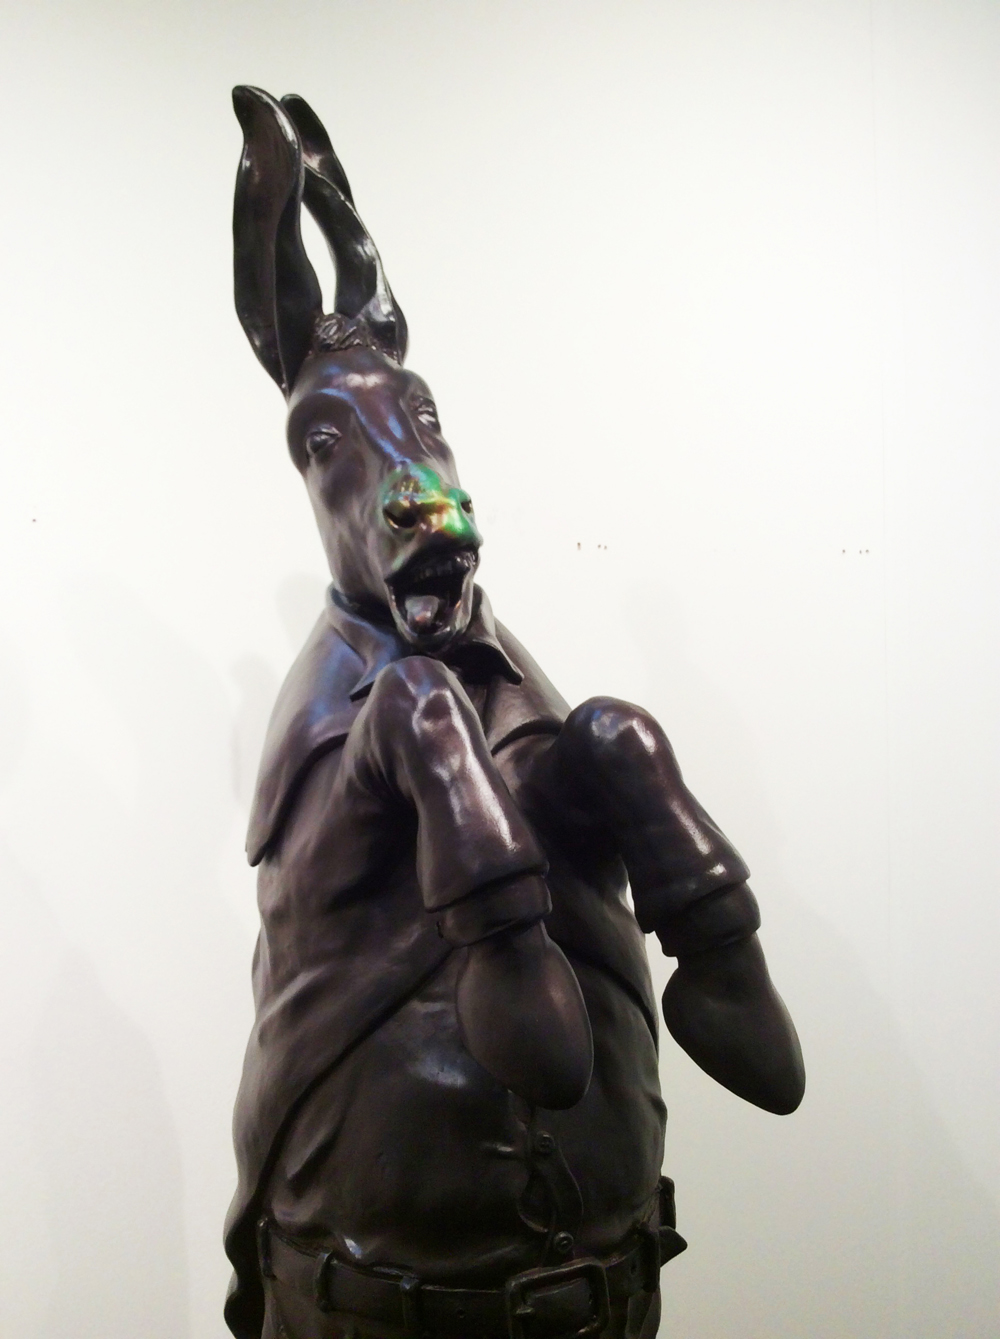 Bors & Ritiu, Black Hole Donkey, Slag Gallery, Basel, Switzerland, 2016